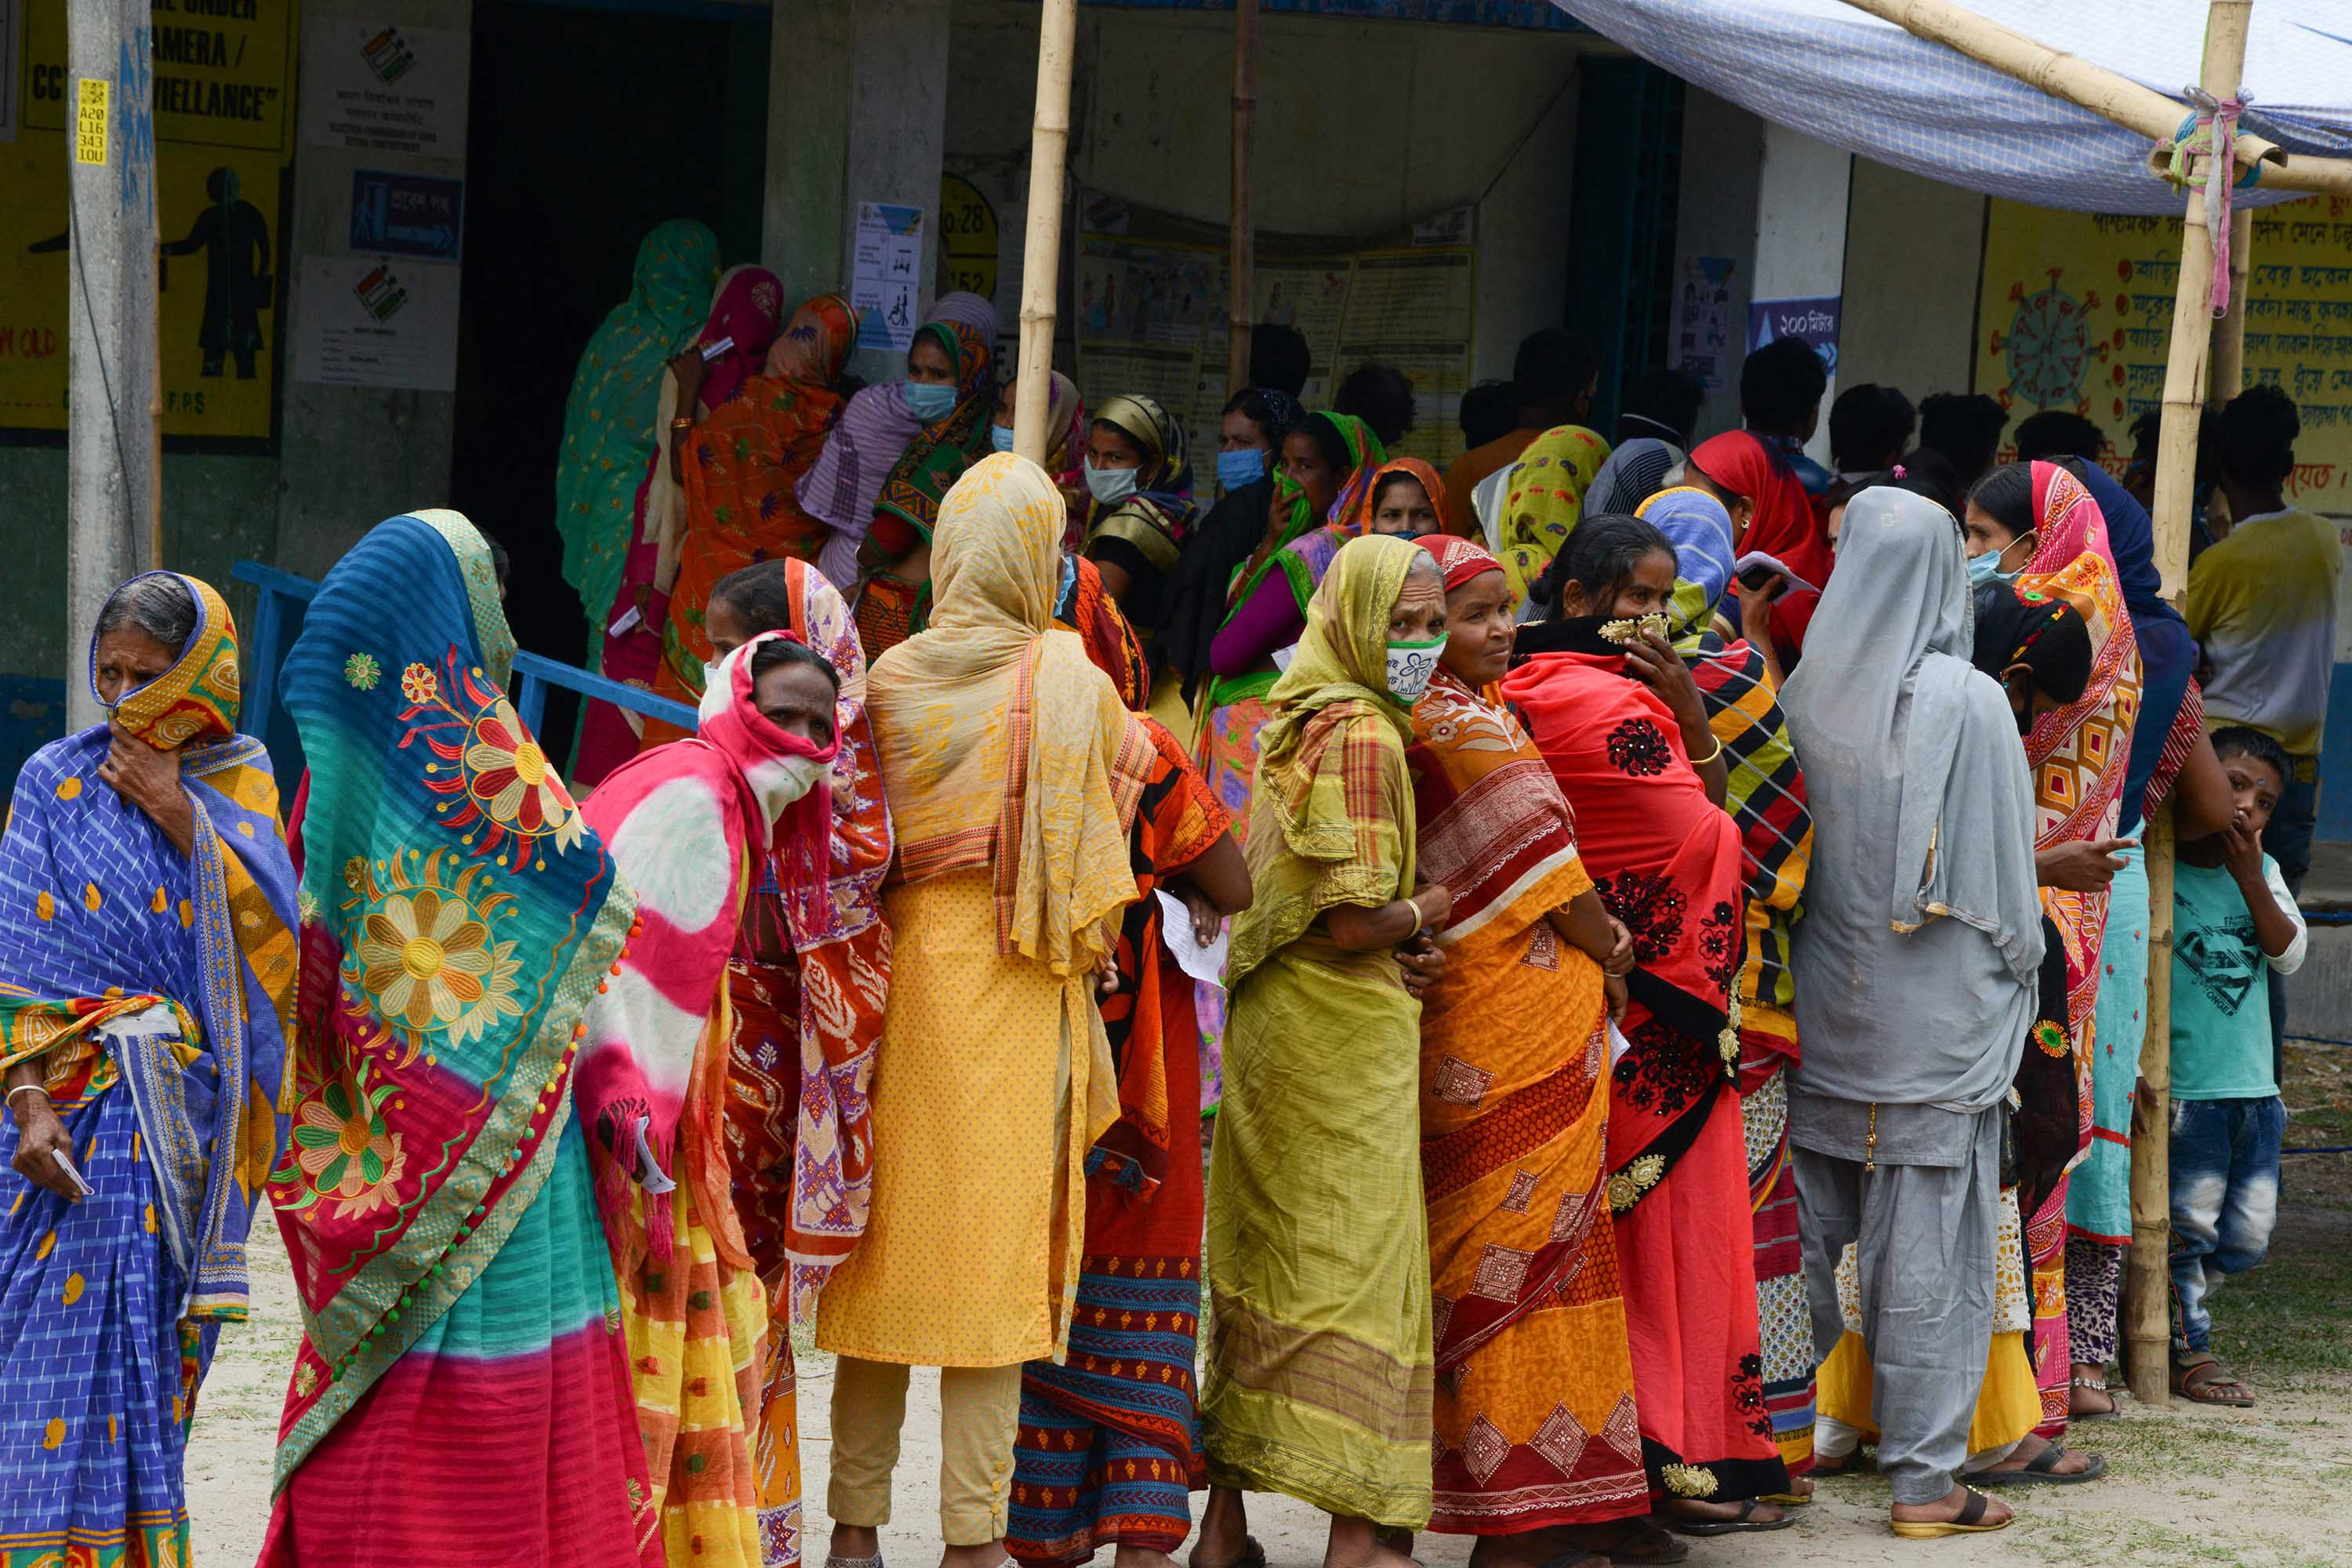 People queue to caste their votes during the 6th phase of the legislative assembly election at Boknabandha village, in India's Dinajpur district, on April 22.